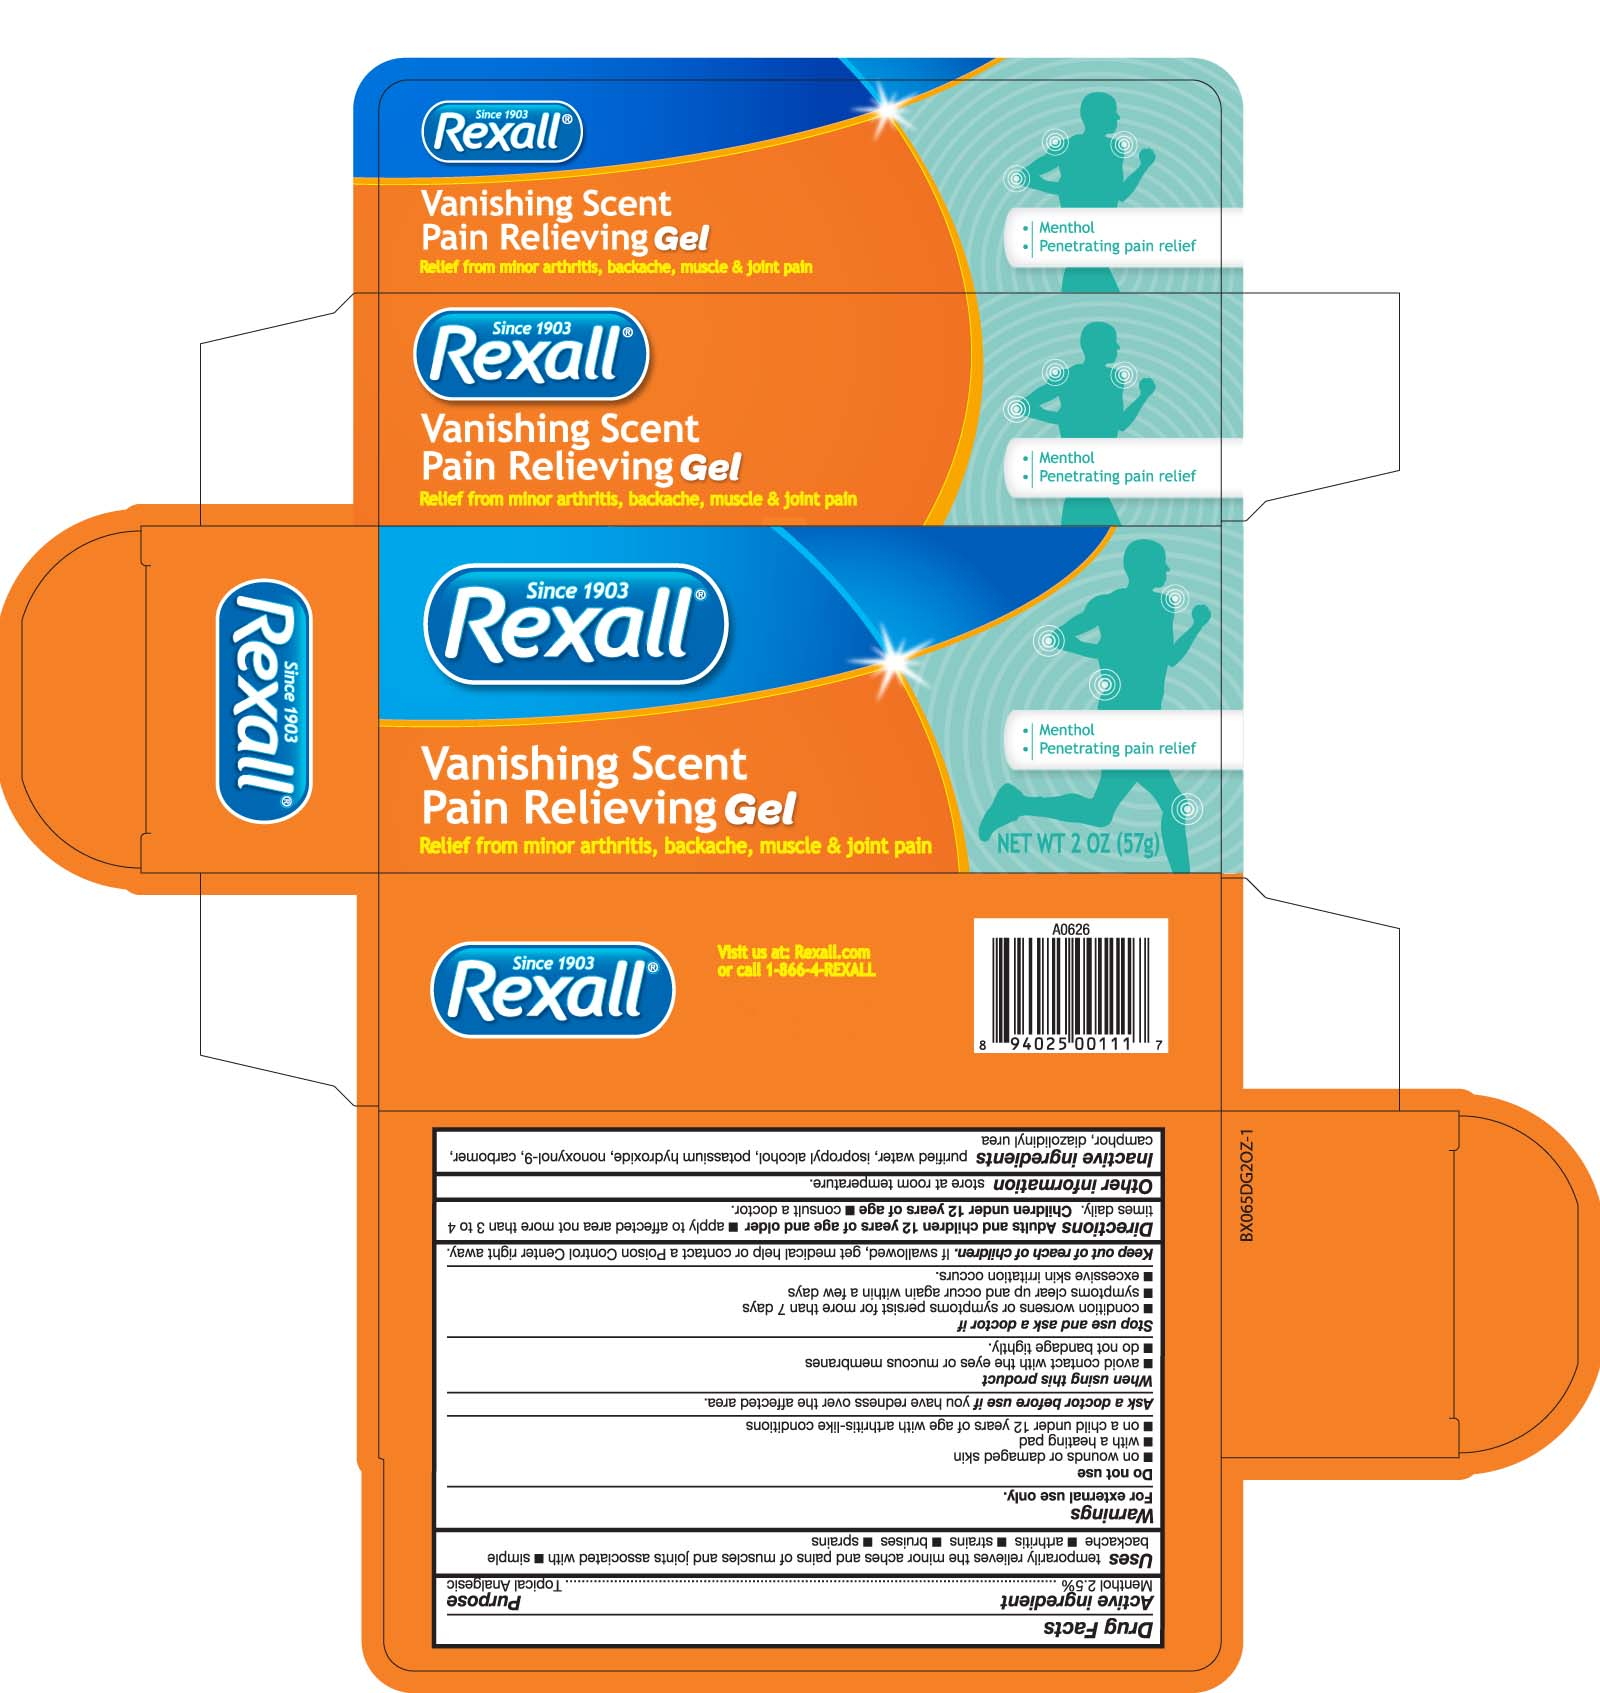 Rexall Vanishing Scent Pain Relieving (Menthol) Gel [Dolgencorp, Llc]